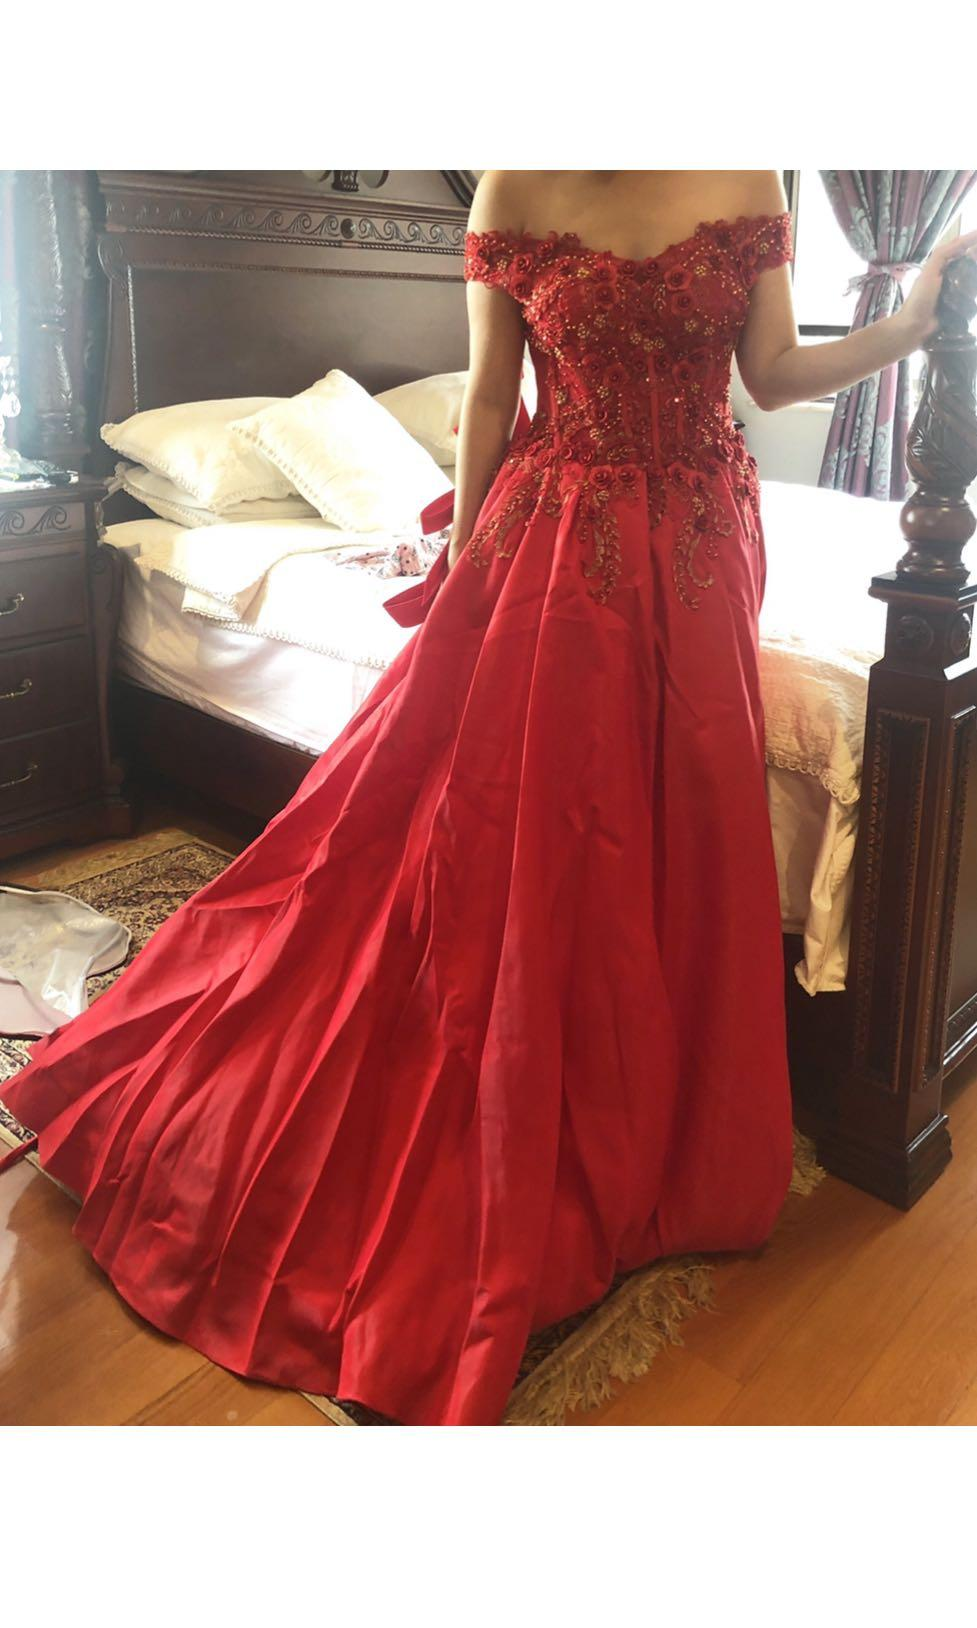 Red evening gown for wedding/ events - Adjustable back straps